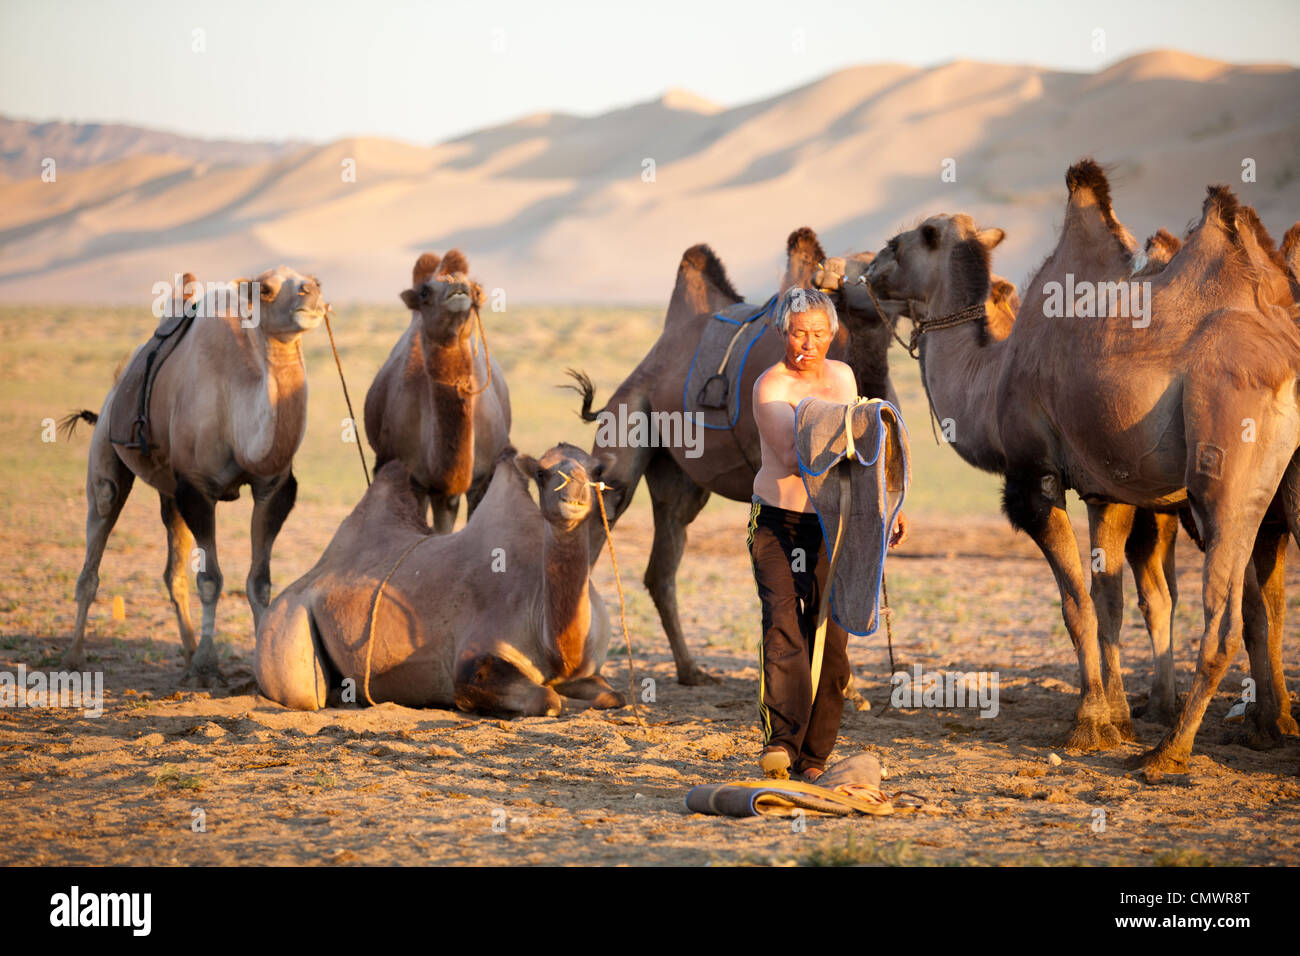 The man care of his camel at Khongor sand dune, Gobi desert, Mongolia - Stock Image